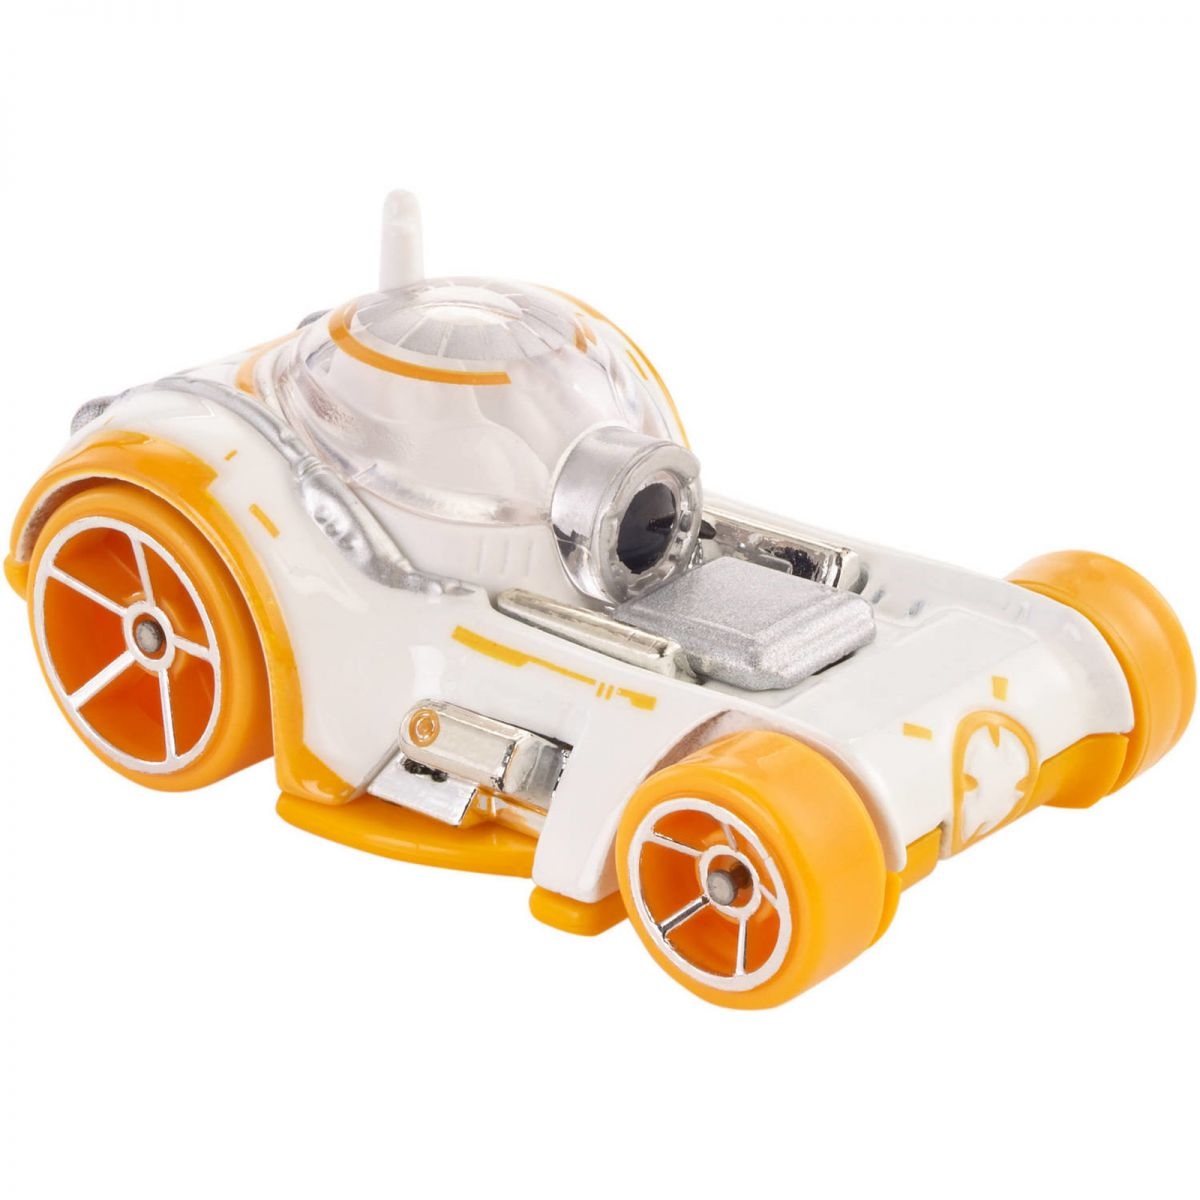 Carrinho Hot Wheels BB-8: Star Wars The Force Awakens - Mattel